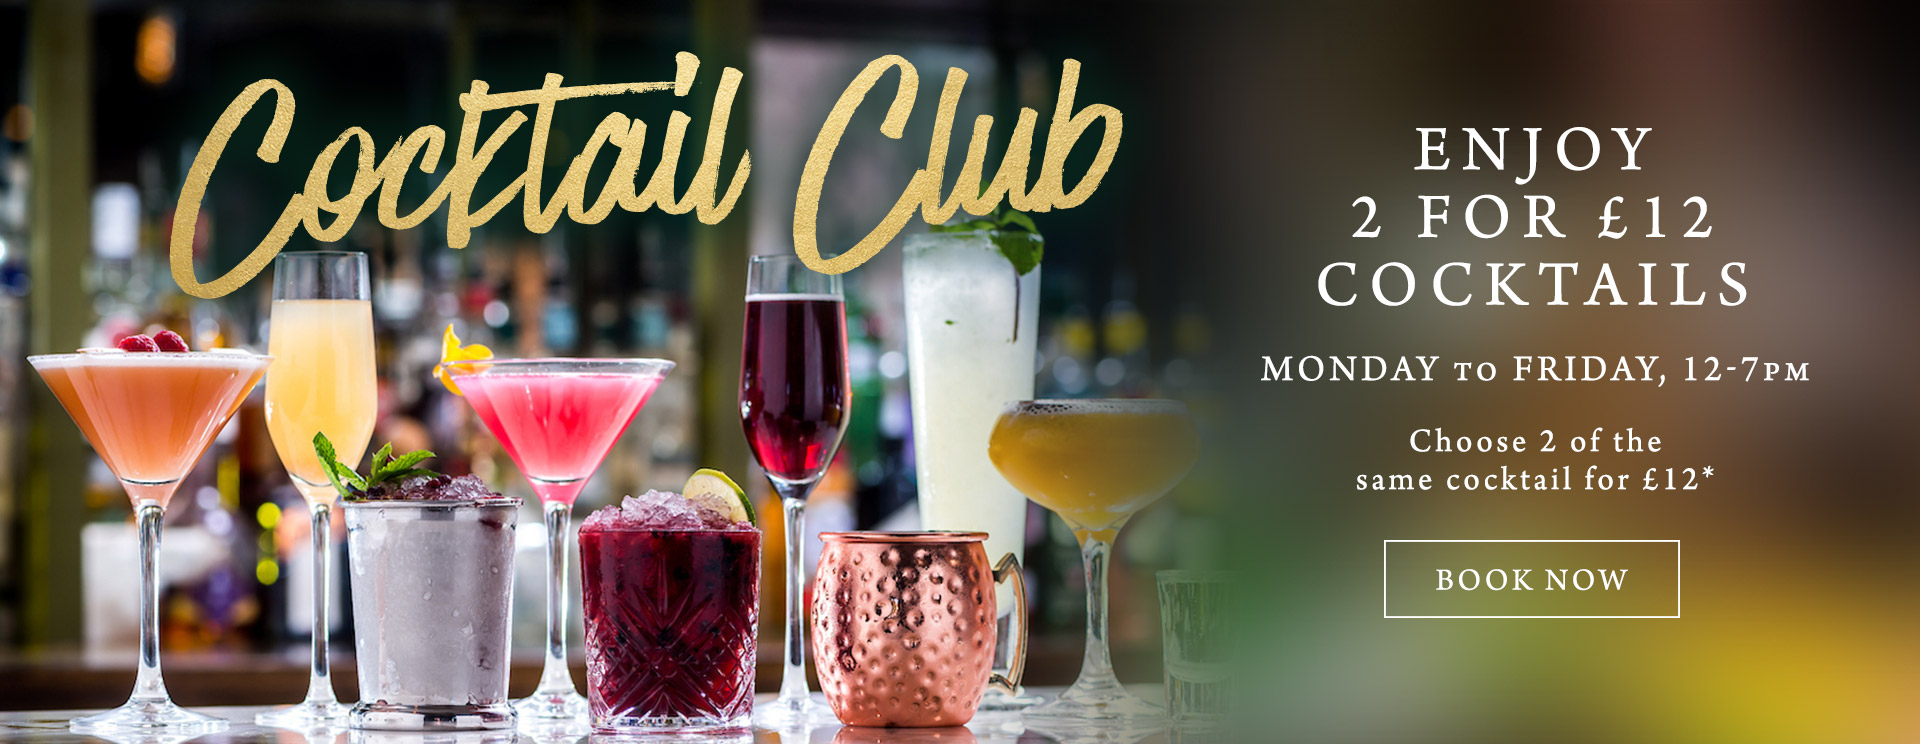 2 for £12 cocktails at The Horse & Groom